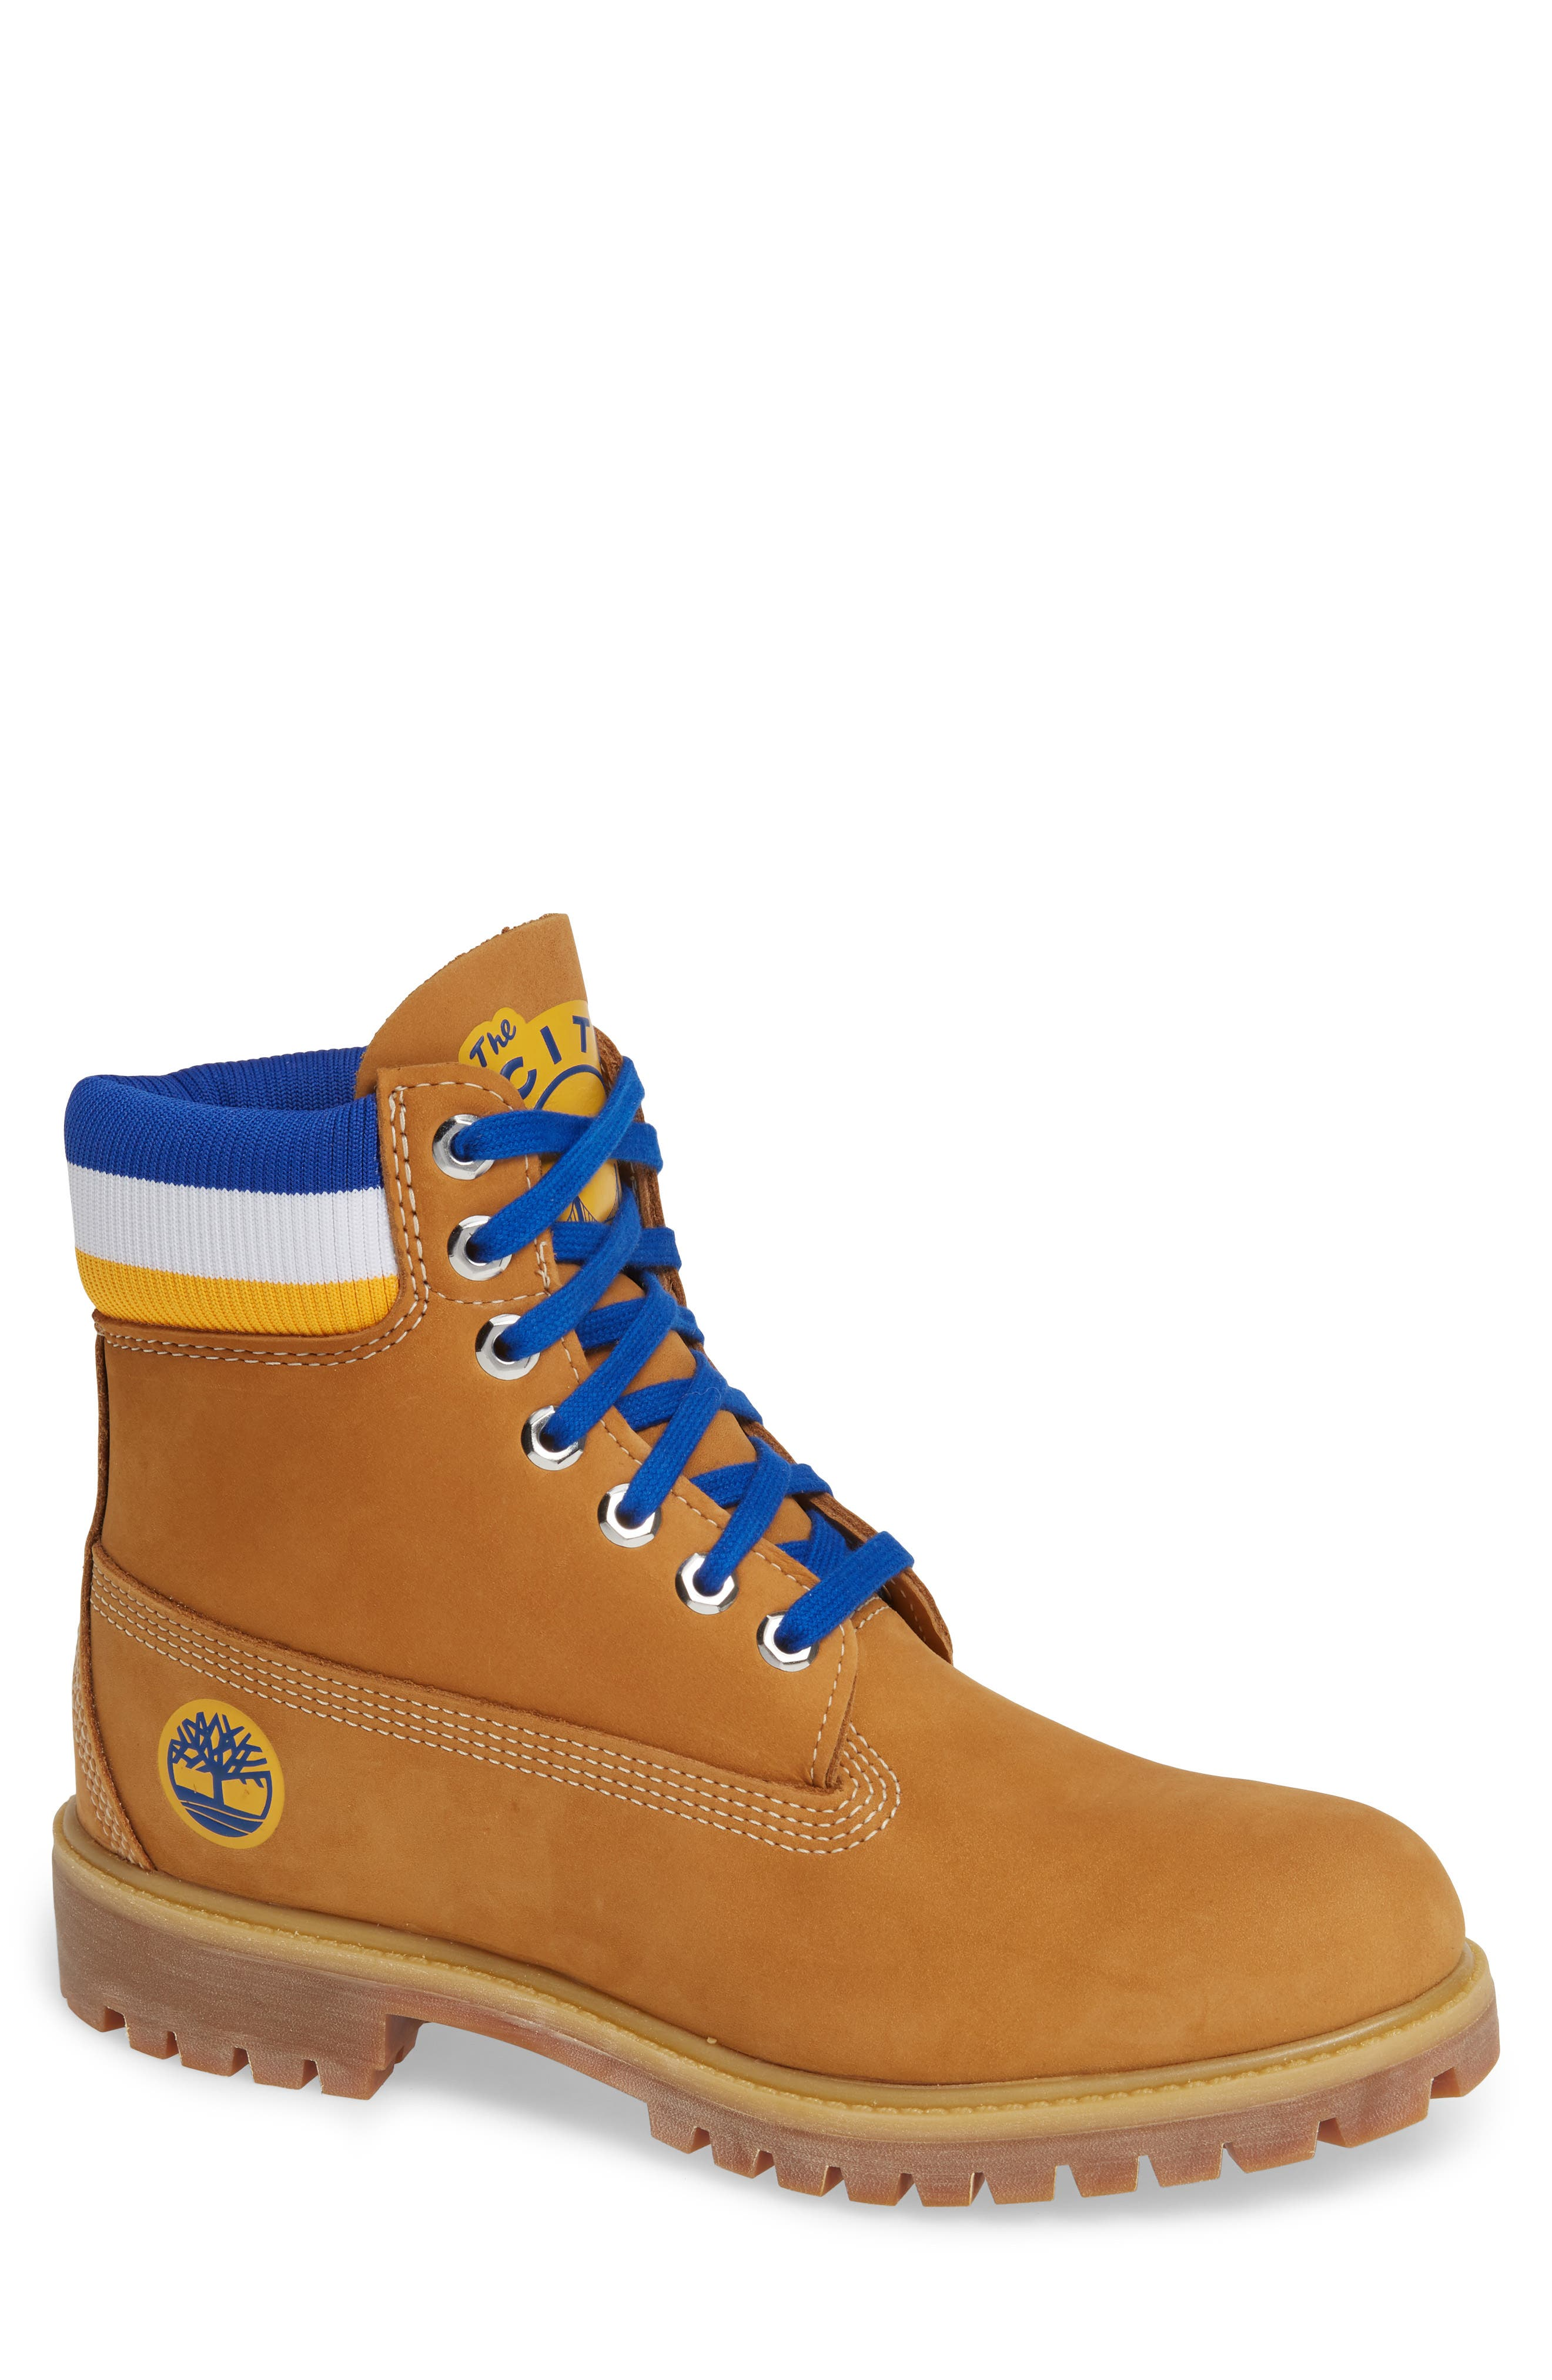 TIMBERLAND Premium NBA Collection Boot, Main, color, WHEAT NUBUCK/ GOLDEN STATE